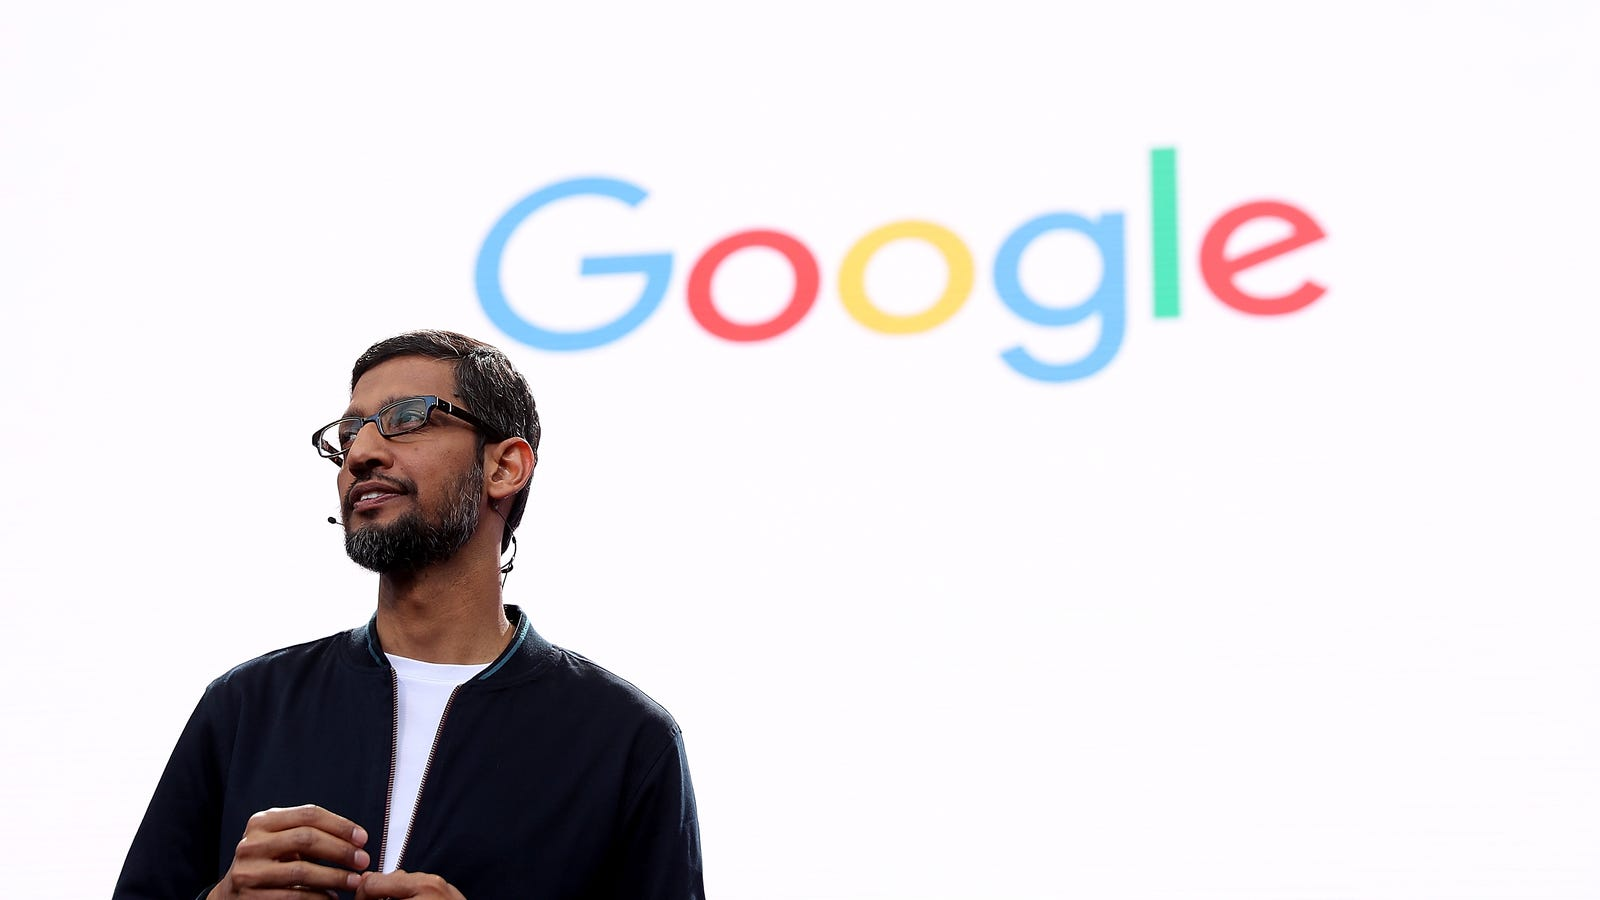 diversity memo An hr pro weighs in on why she thinks google reacted to swiftly in firing the engineer who wrote the memo.